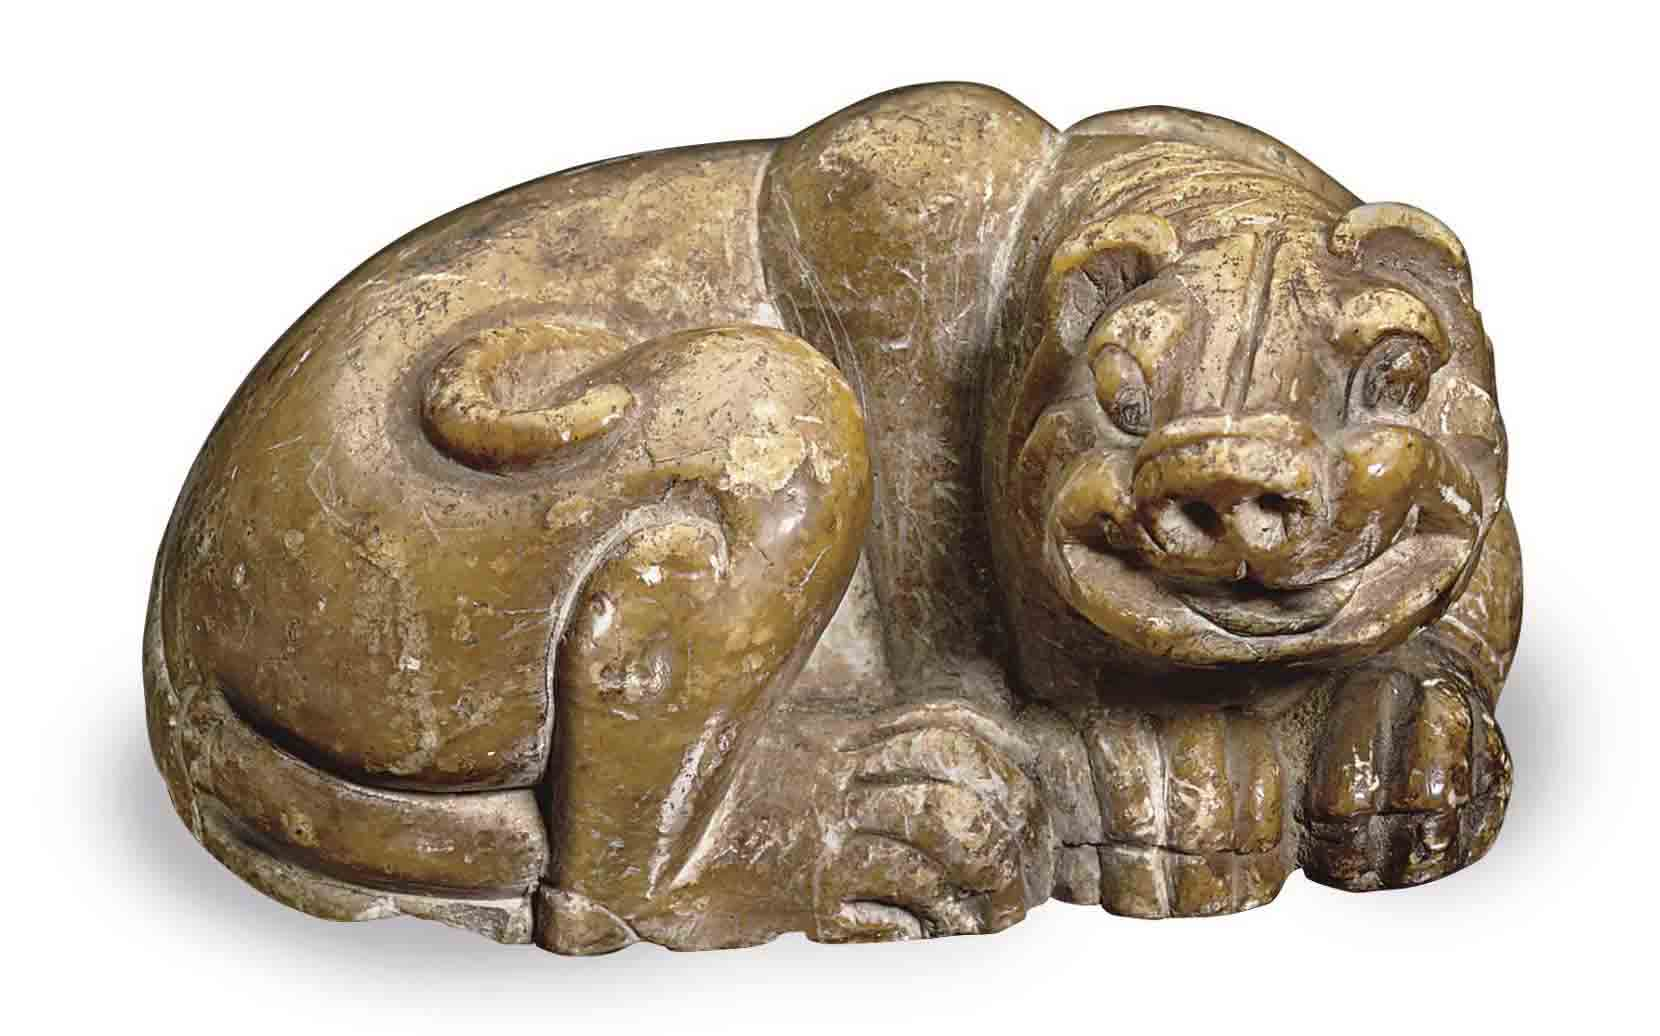 A CHINESE SOAPSTONE FIGURE OF A RECUMBENT TIGER,